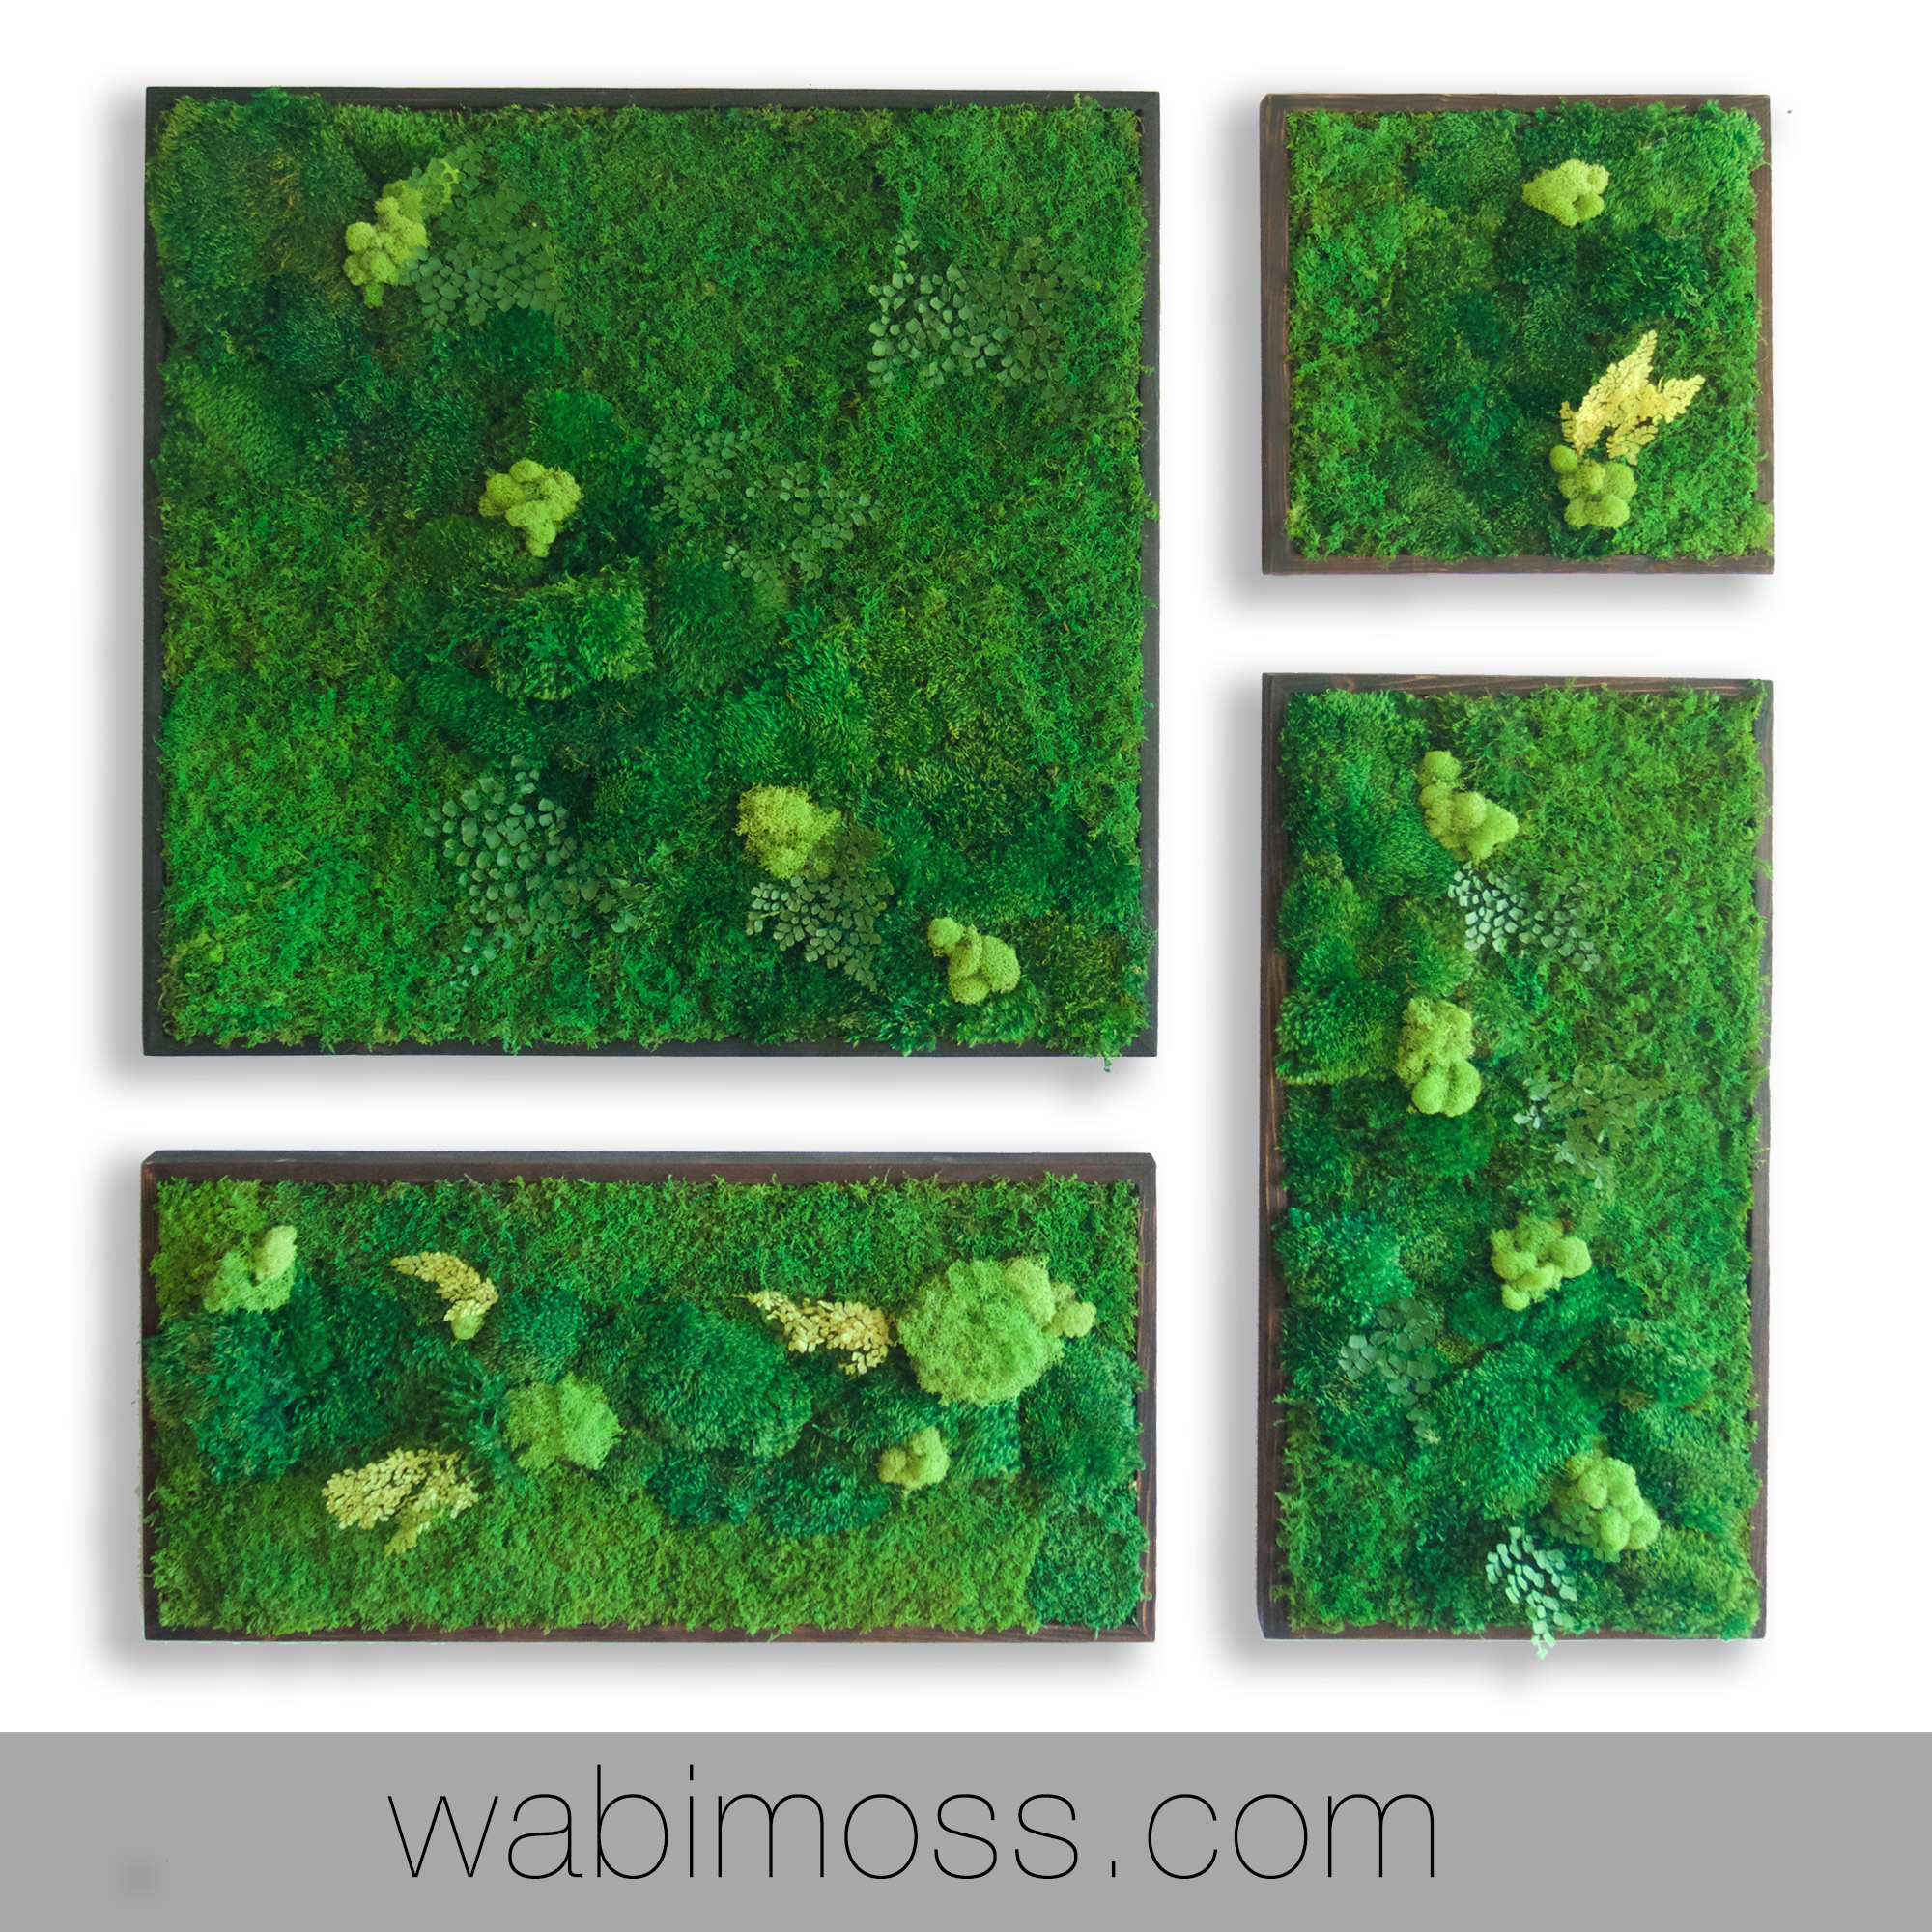 58x58 Quot Real Preserved Moss Wall Art Green Wall Collage No